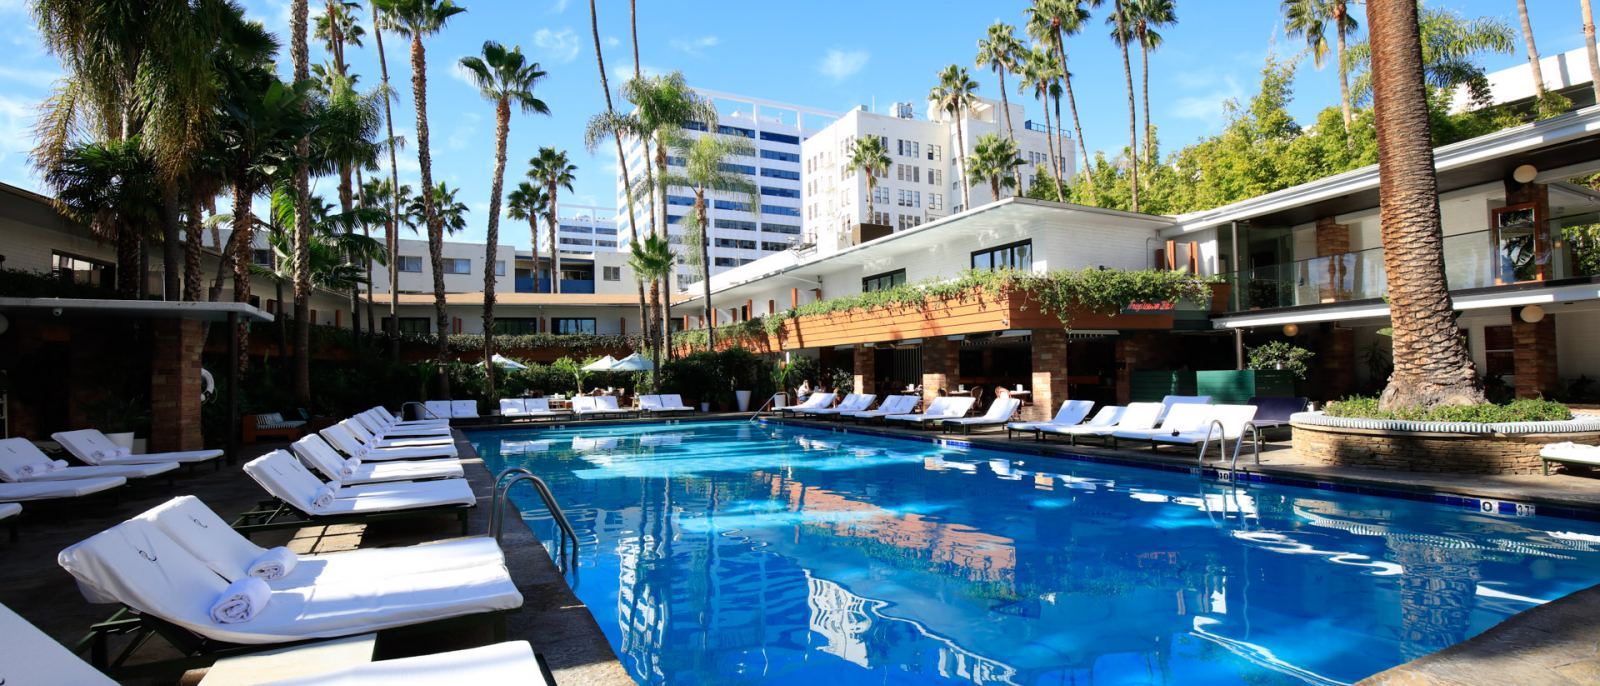 Hollywood Roosevelt Tropicana Pool and Cabanas